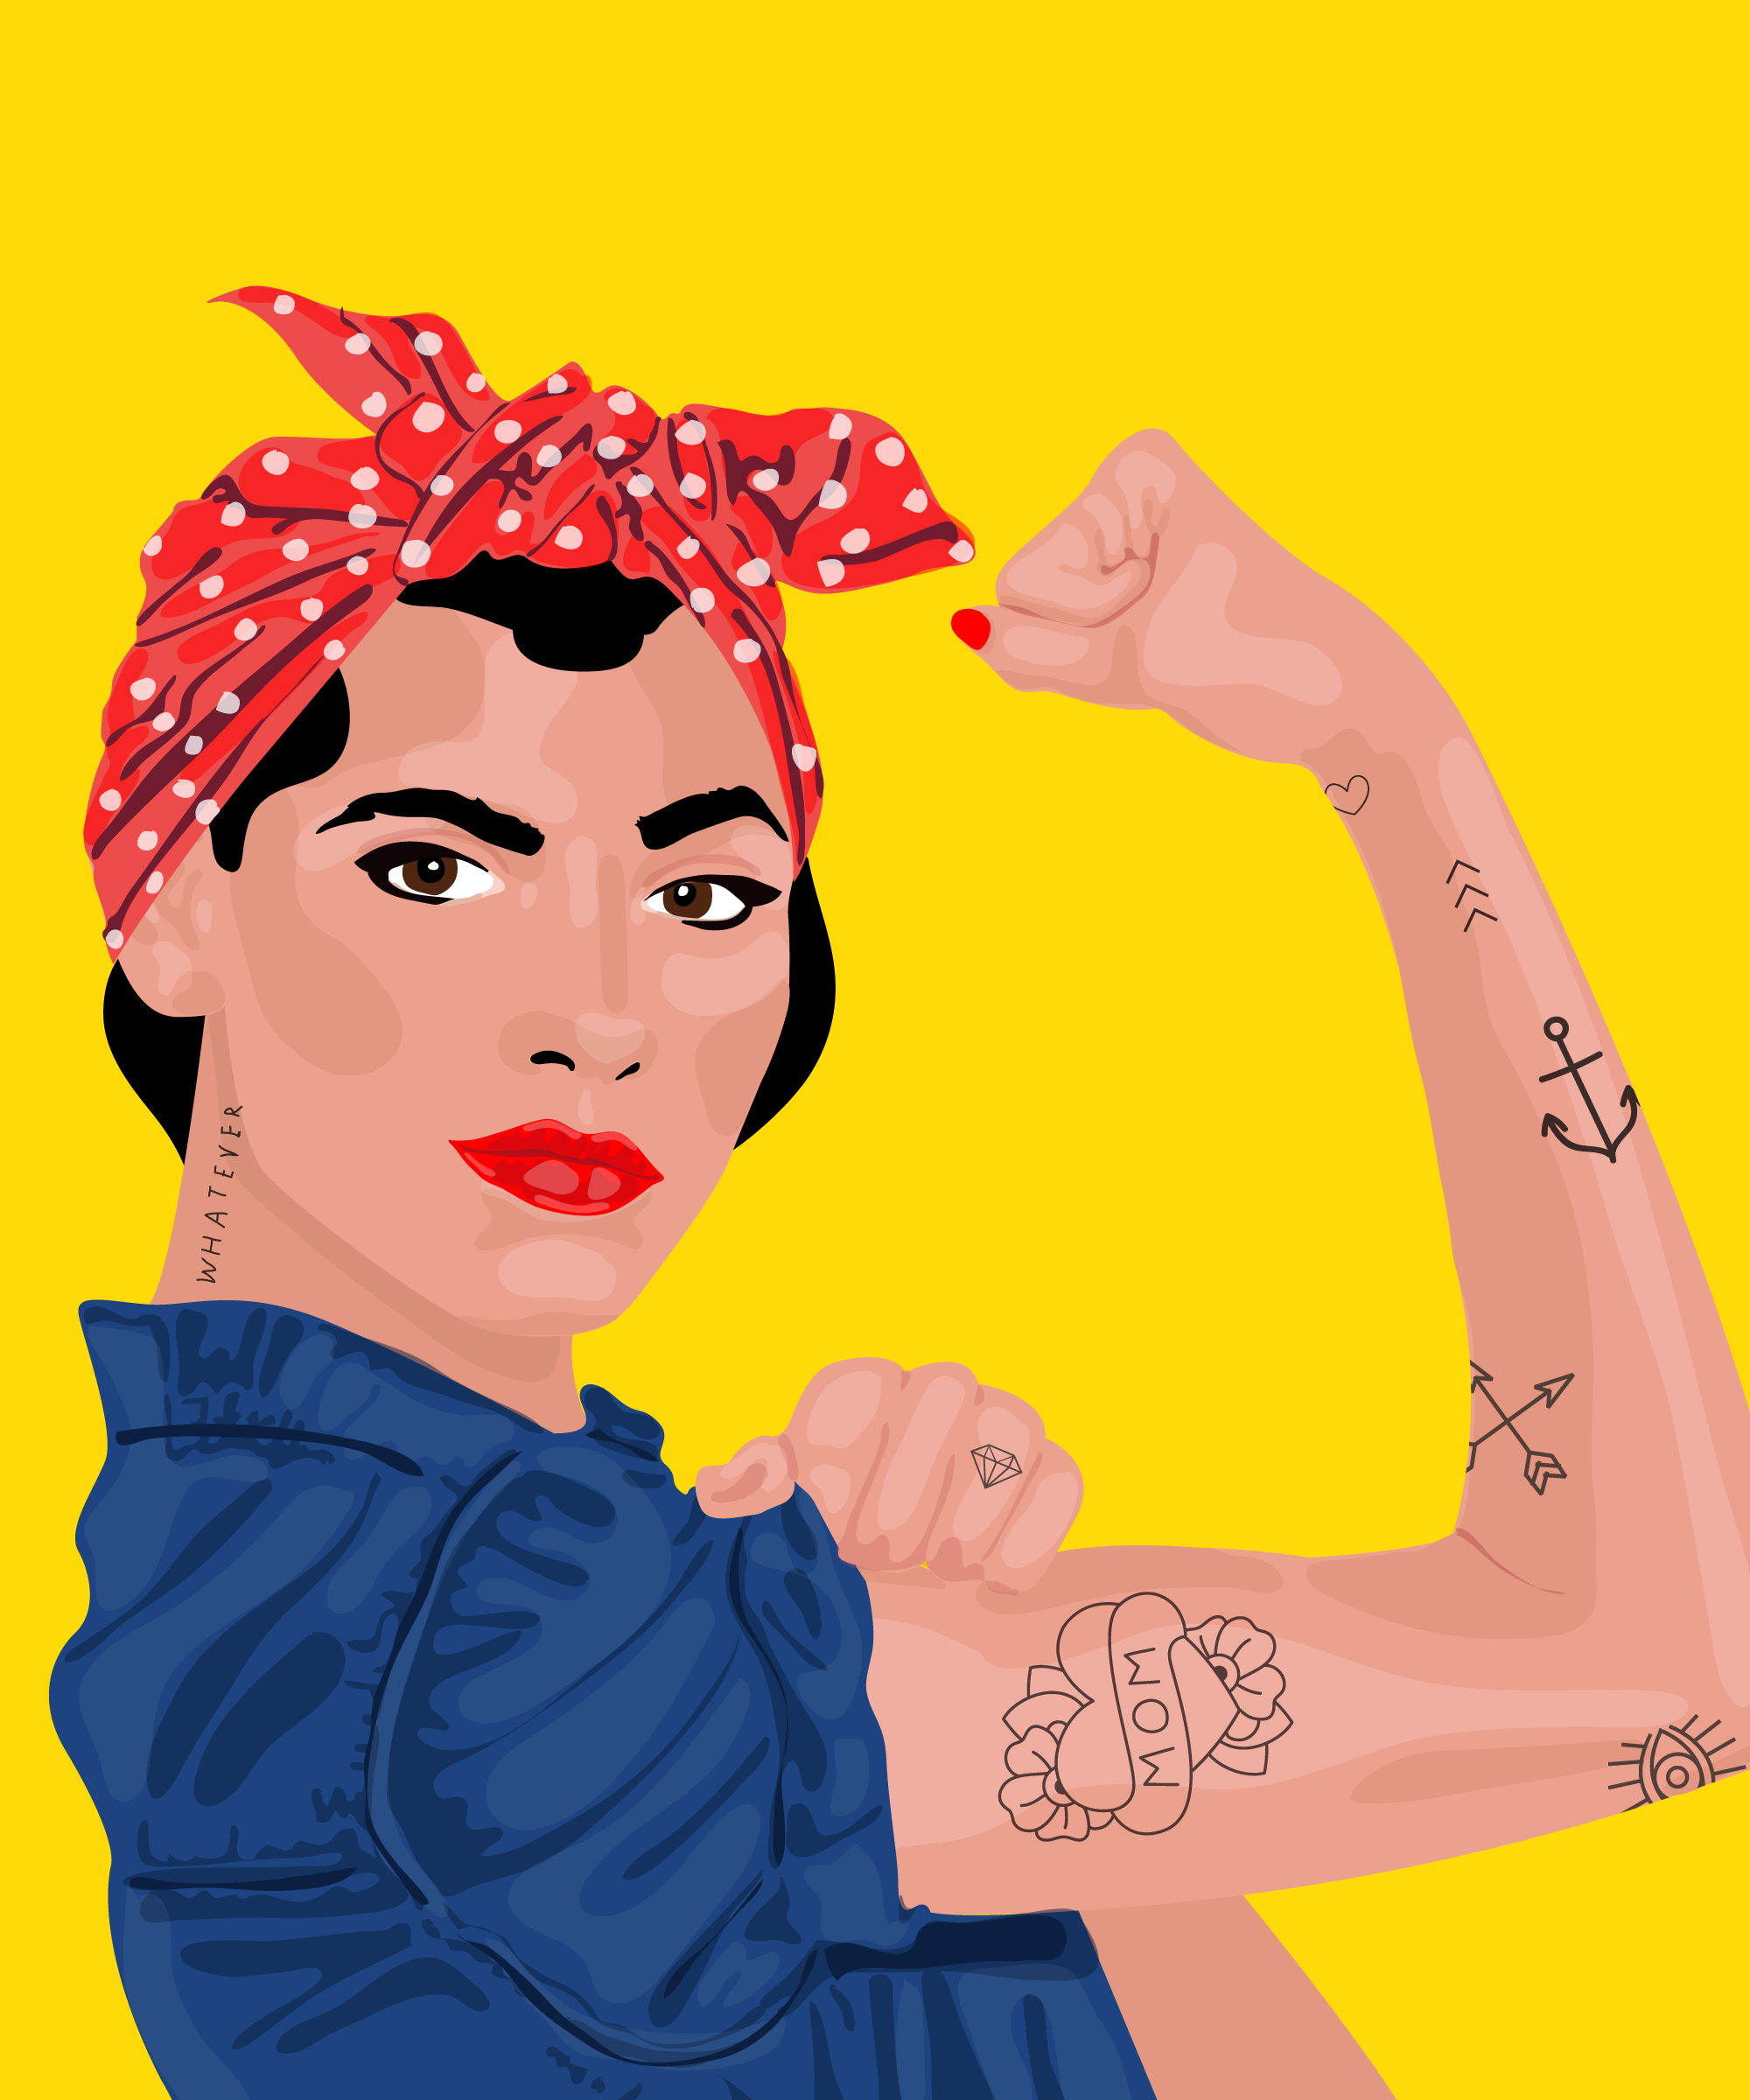 rosie the riveter costume diy halloween photos - Rosie The Riveter Halloween Costume